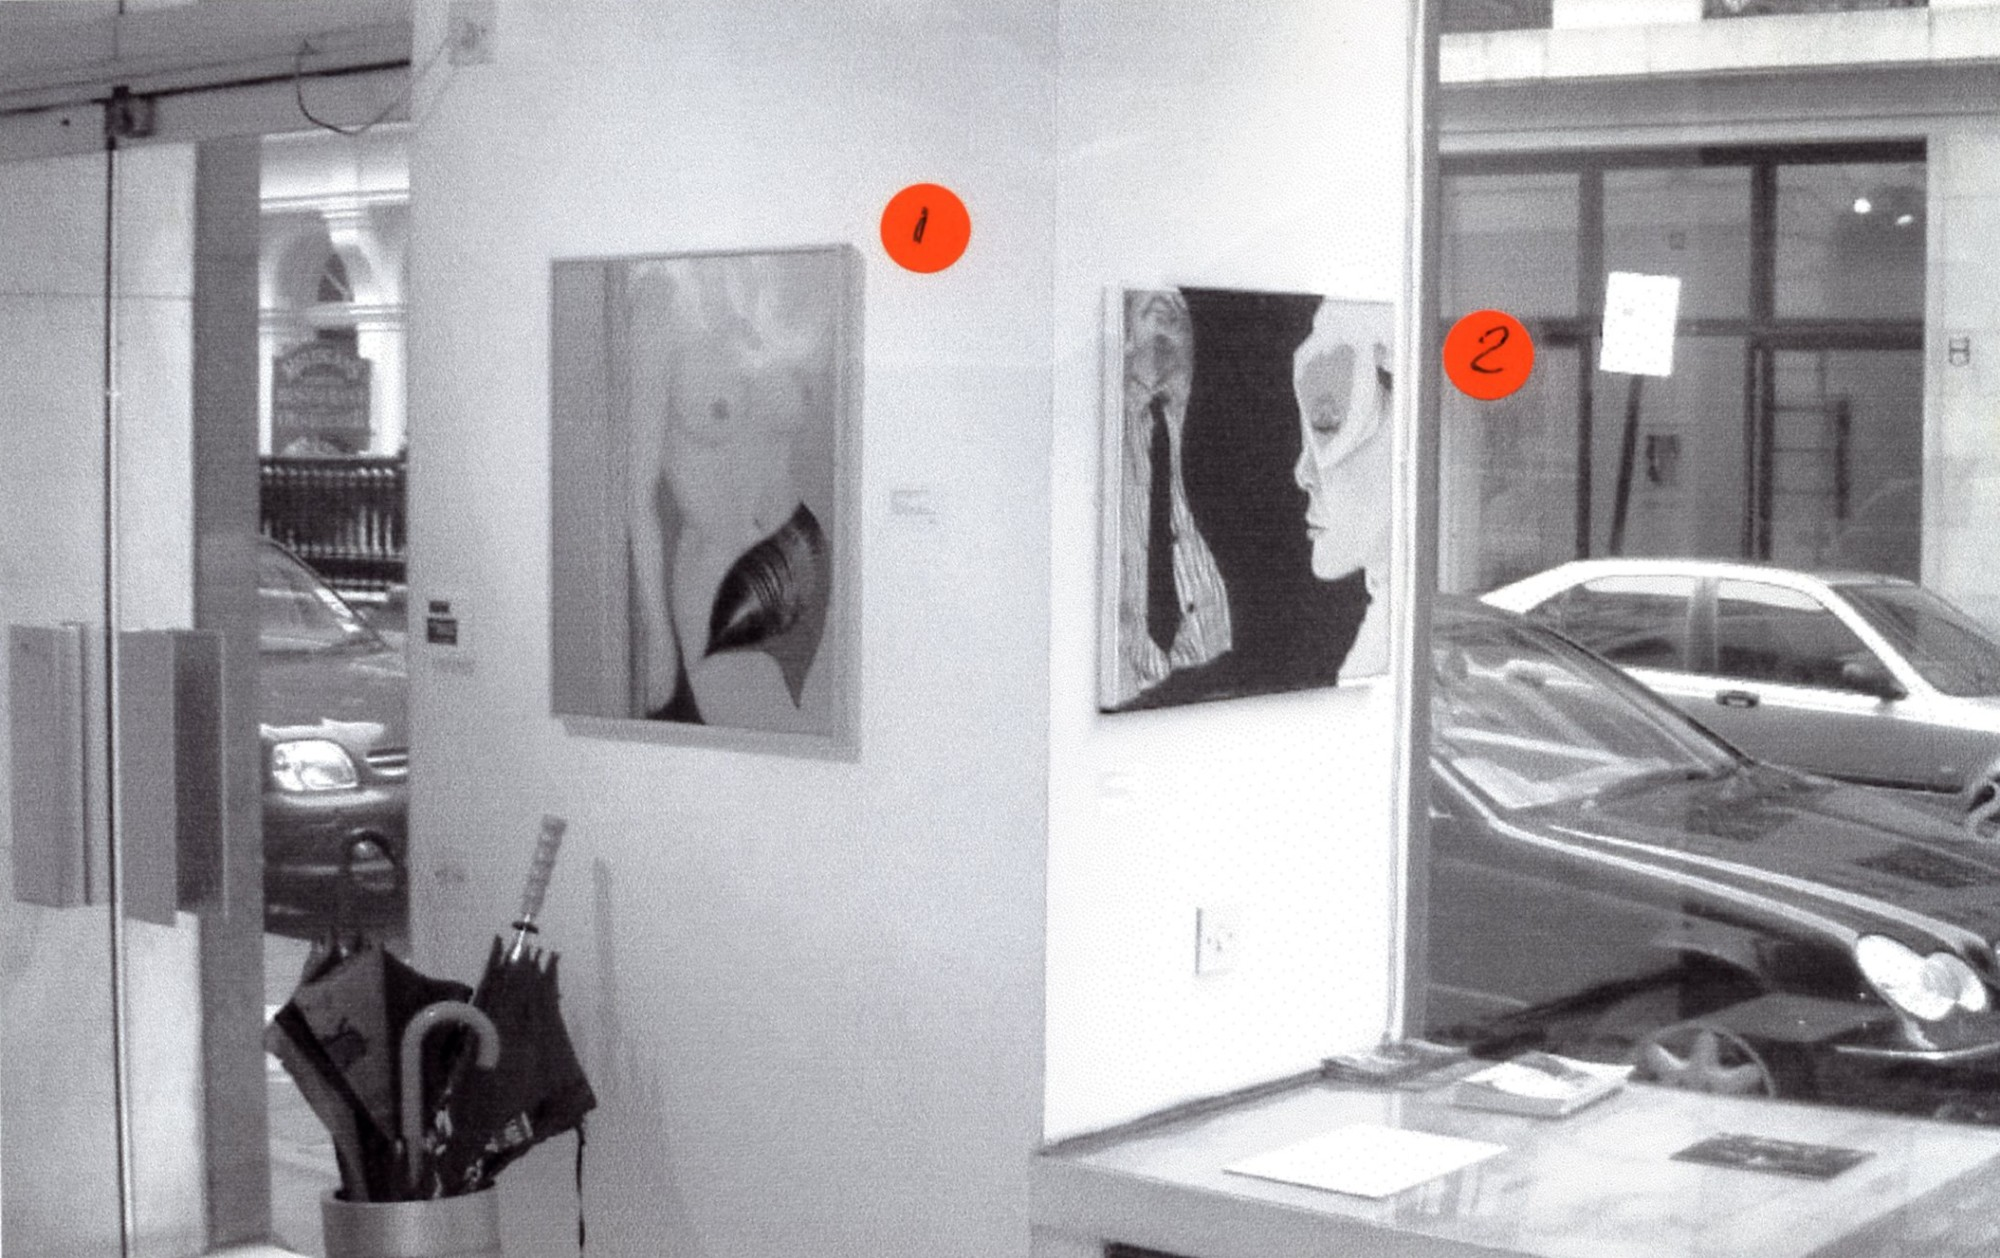 """<span class=""""link fancybox-details-link""""><a href=""""/exhibitions/131/works/image_standalone544/"""">View Detail Page</a></span><p>EVELYNE AXELL   EROTOMOBILES   05 JUN - 31 AUG 2003   Installation View</p>"""